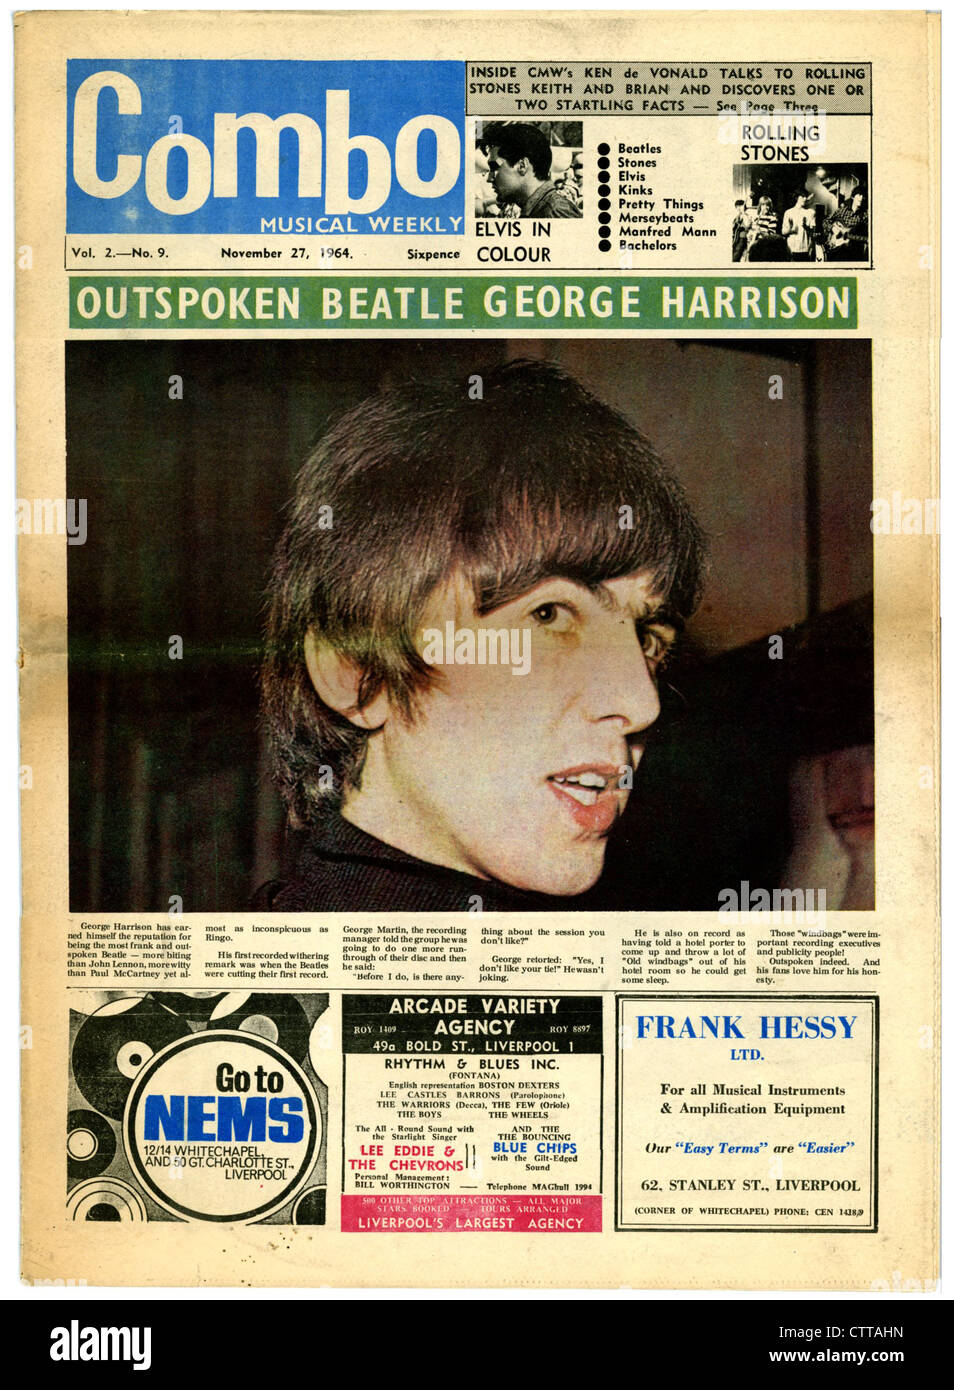 000944 - Combo Music Newspaper with George Harrison on the cover from 27th November 1964 - Stock Image